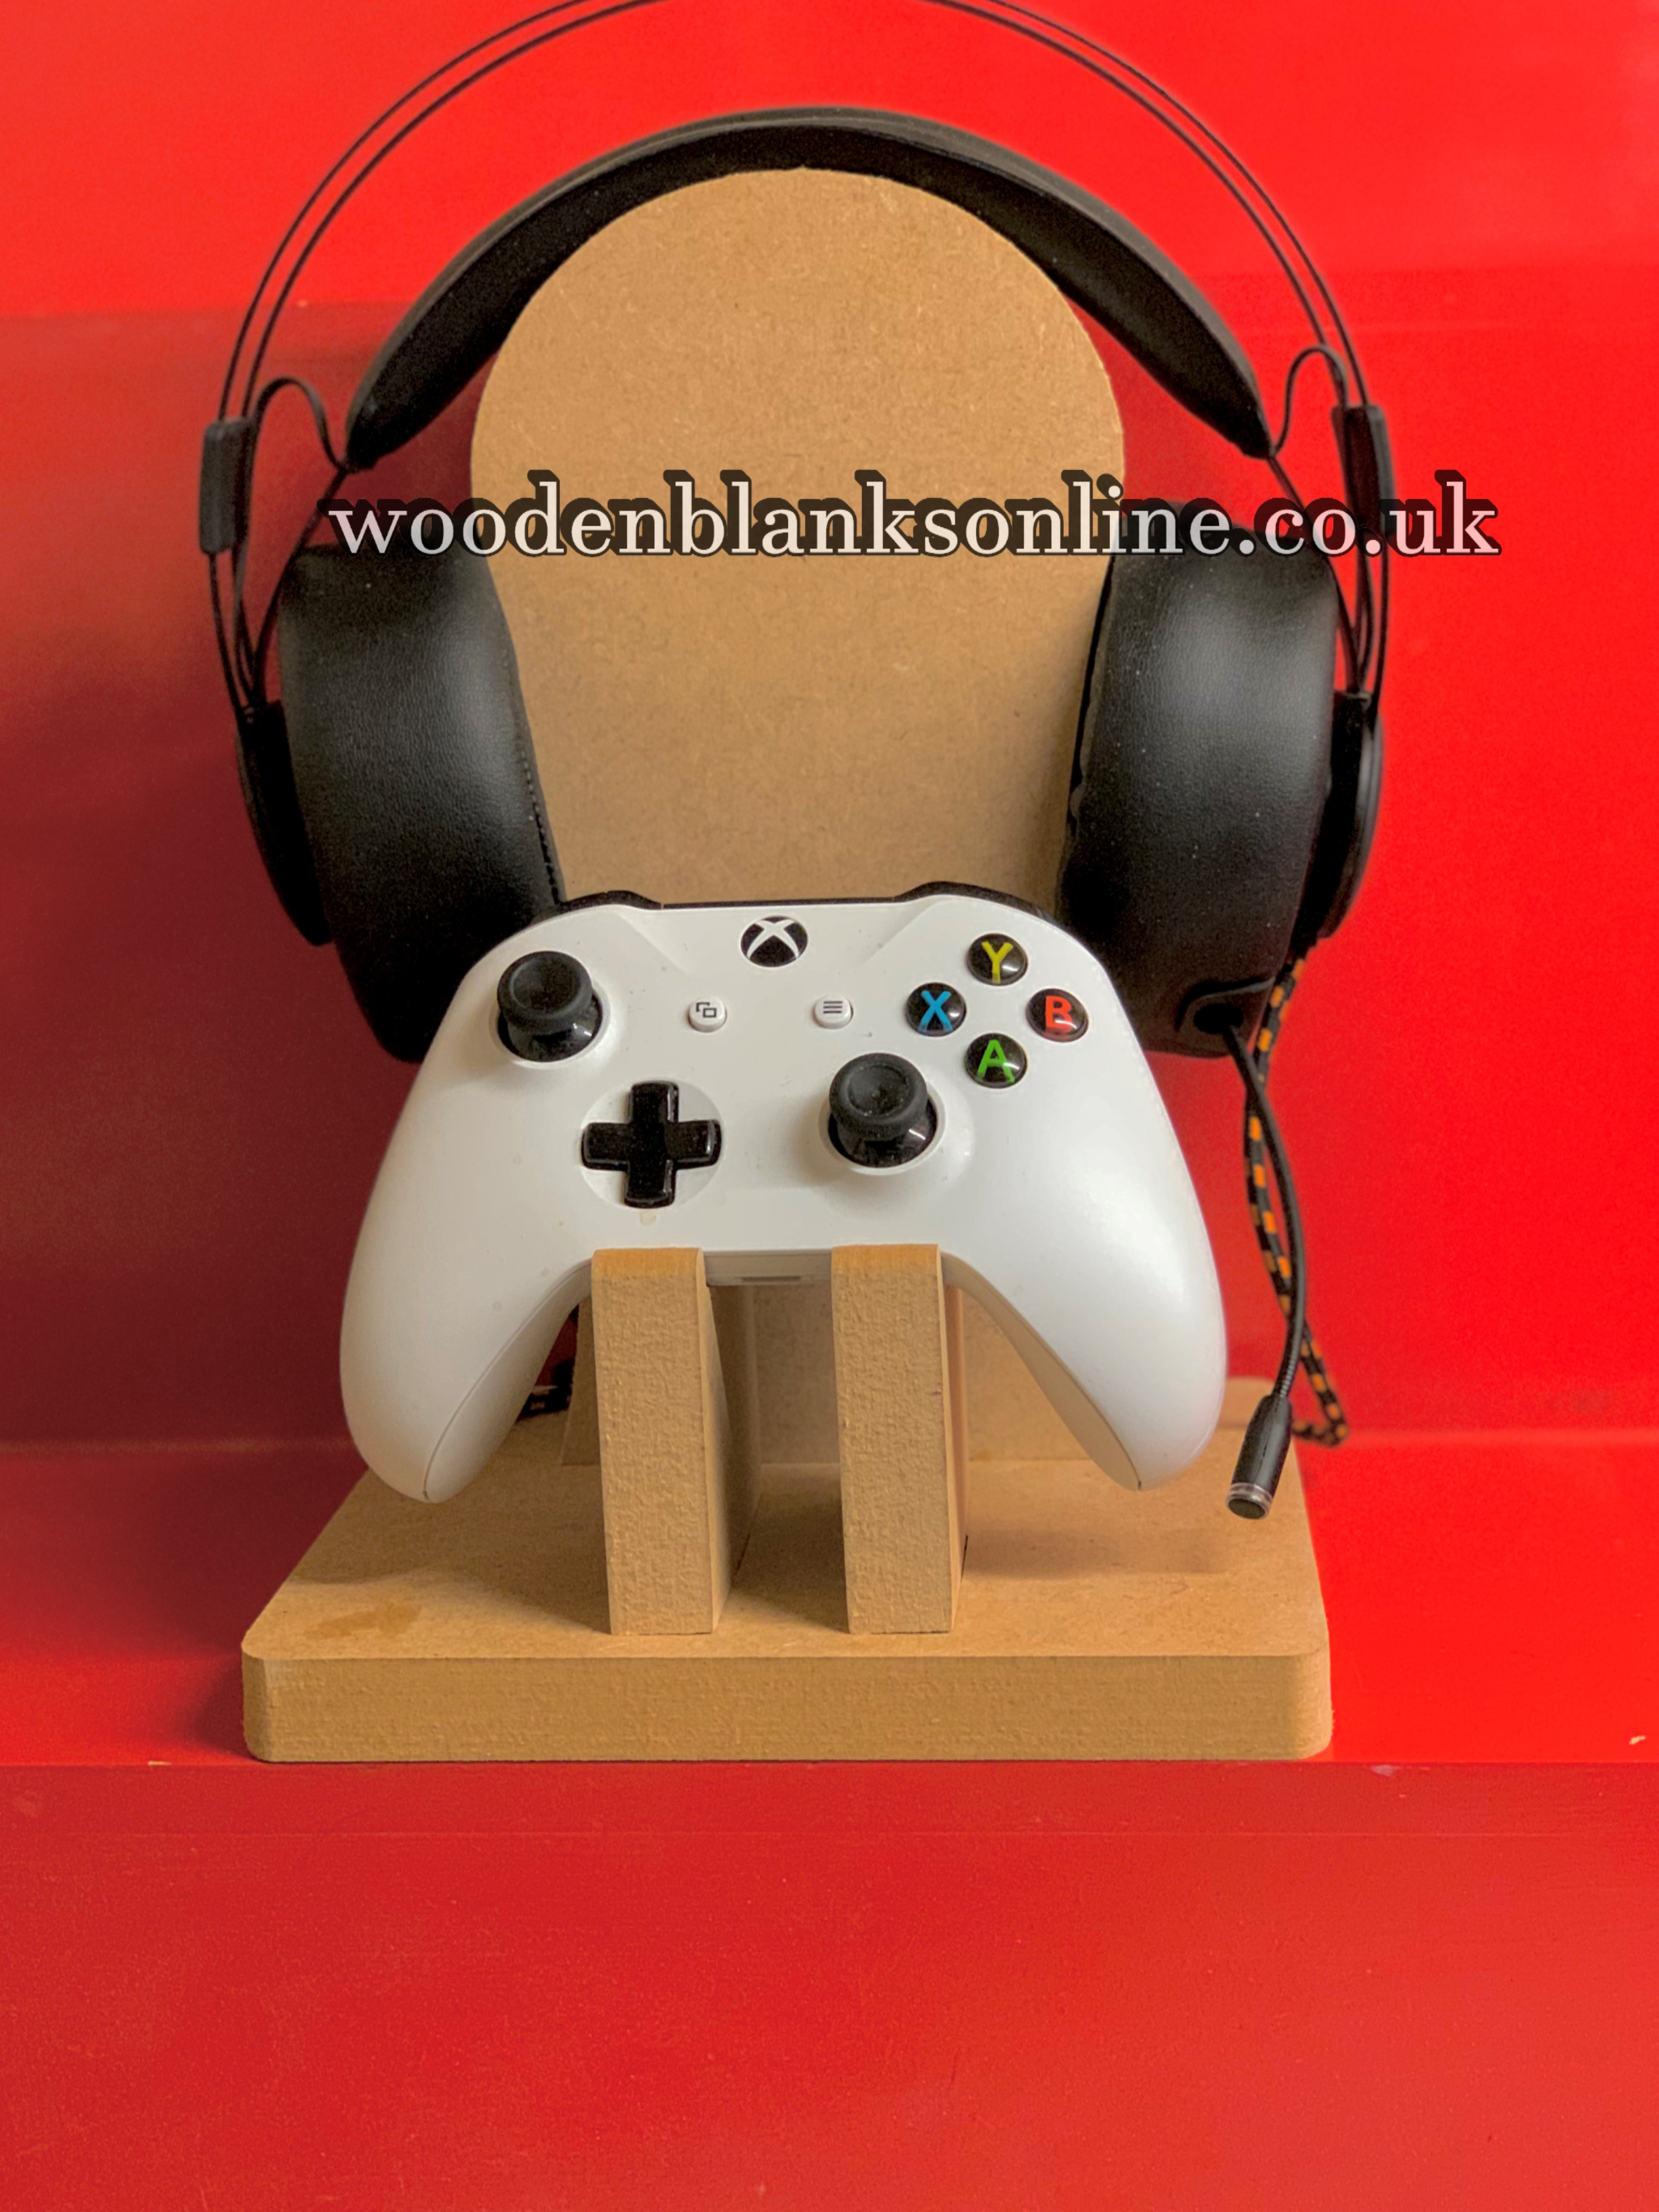 Headset & Single controller stand